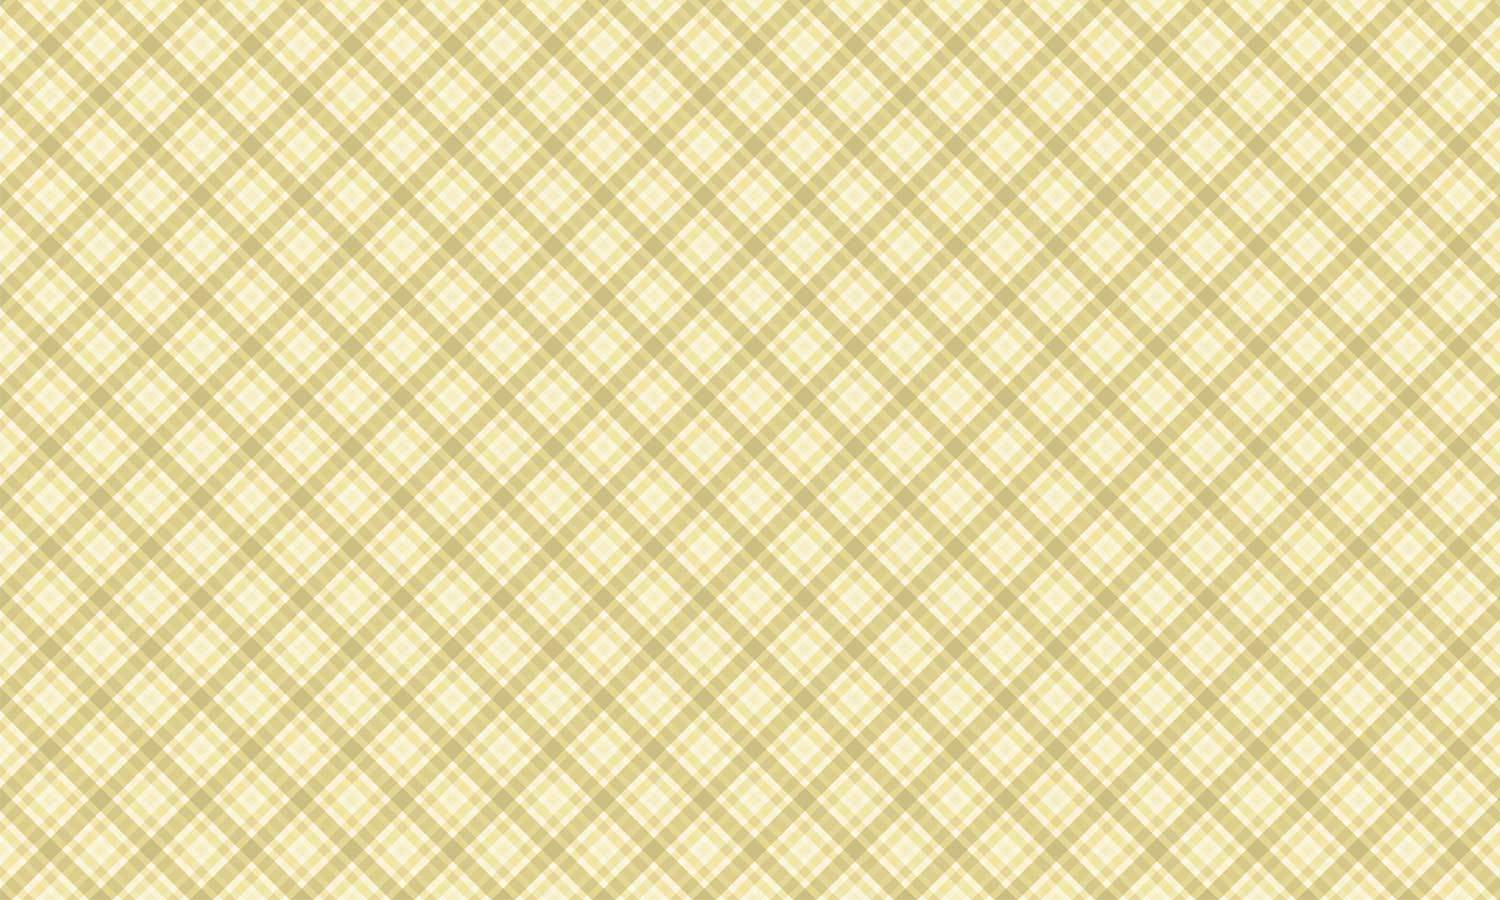 self-adhesive film for furniture - checkered  PAT039